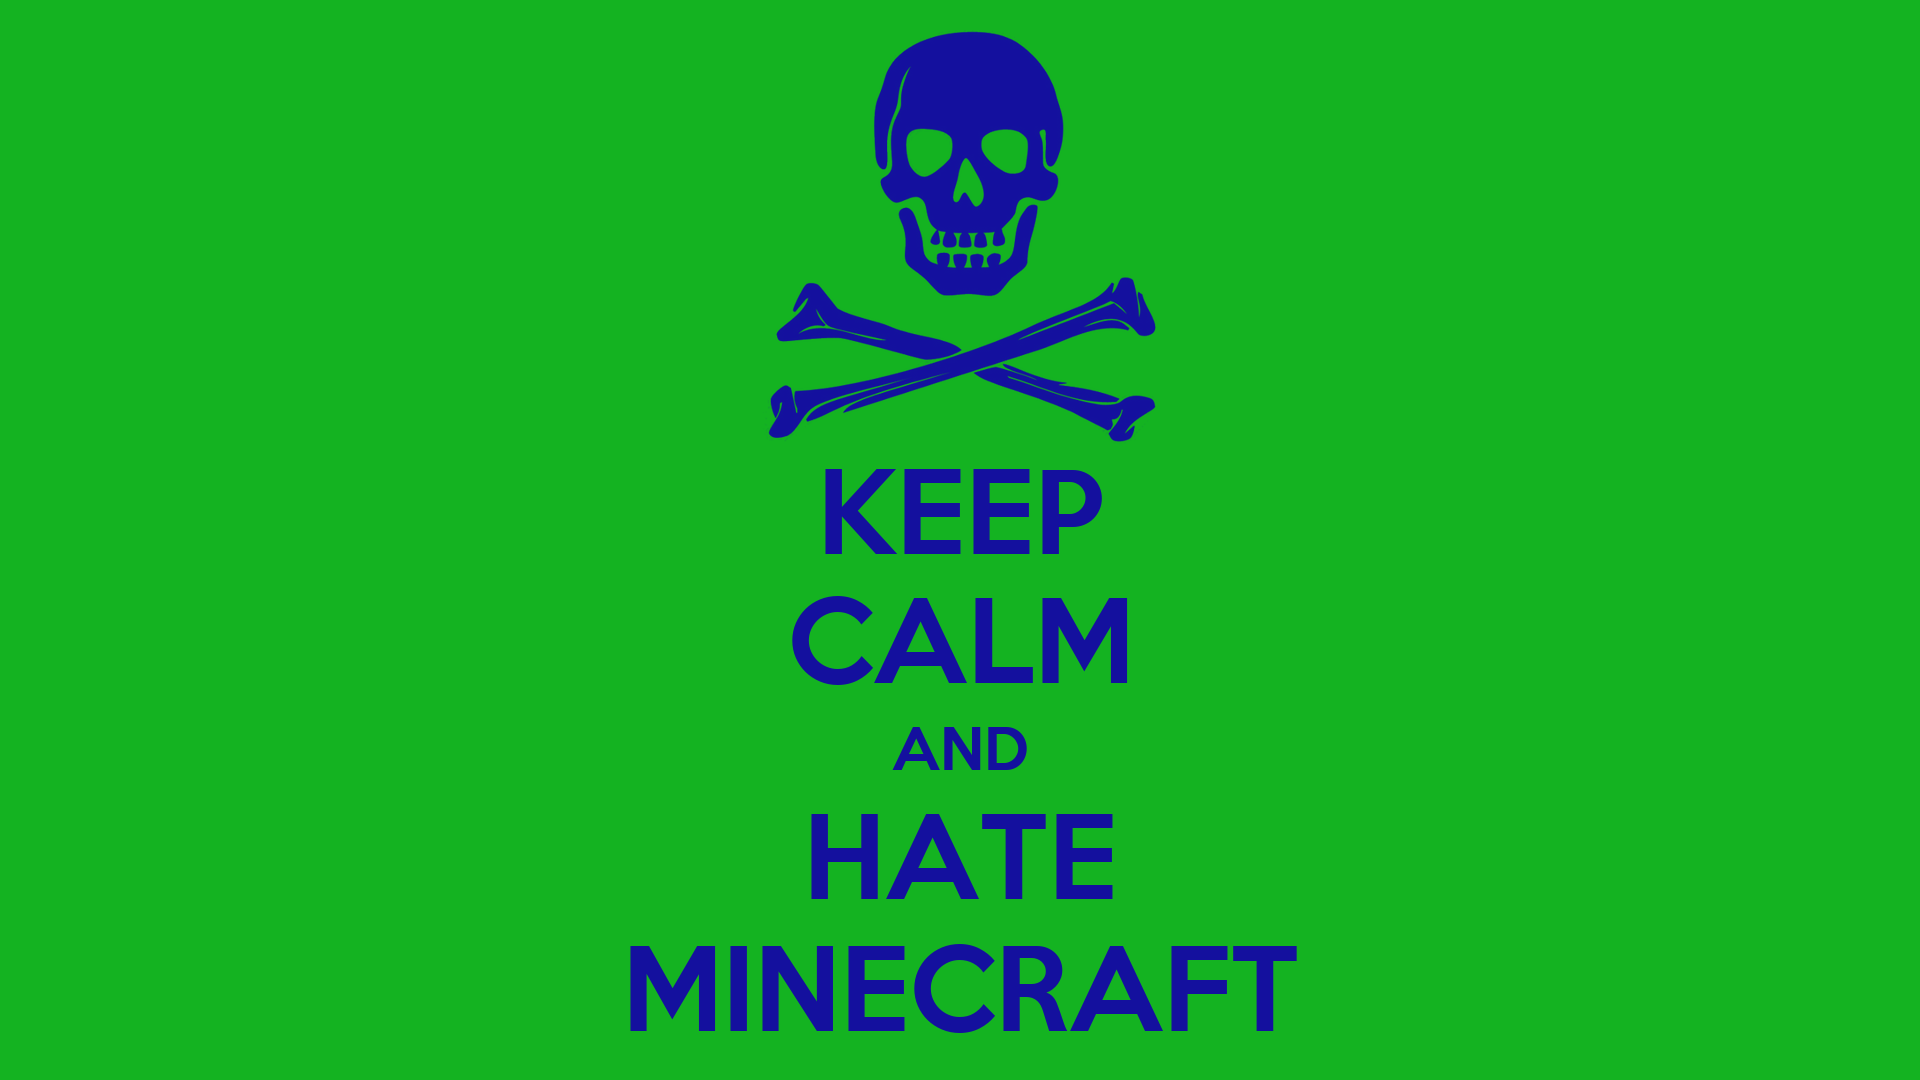 KEEP CALM AND HATE MINECRAFT Poster | Roderick